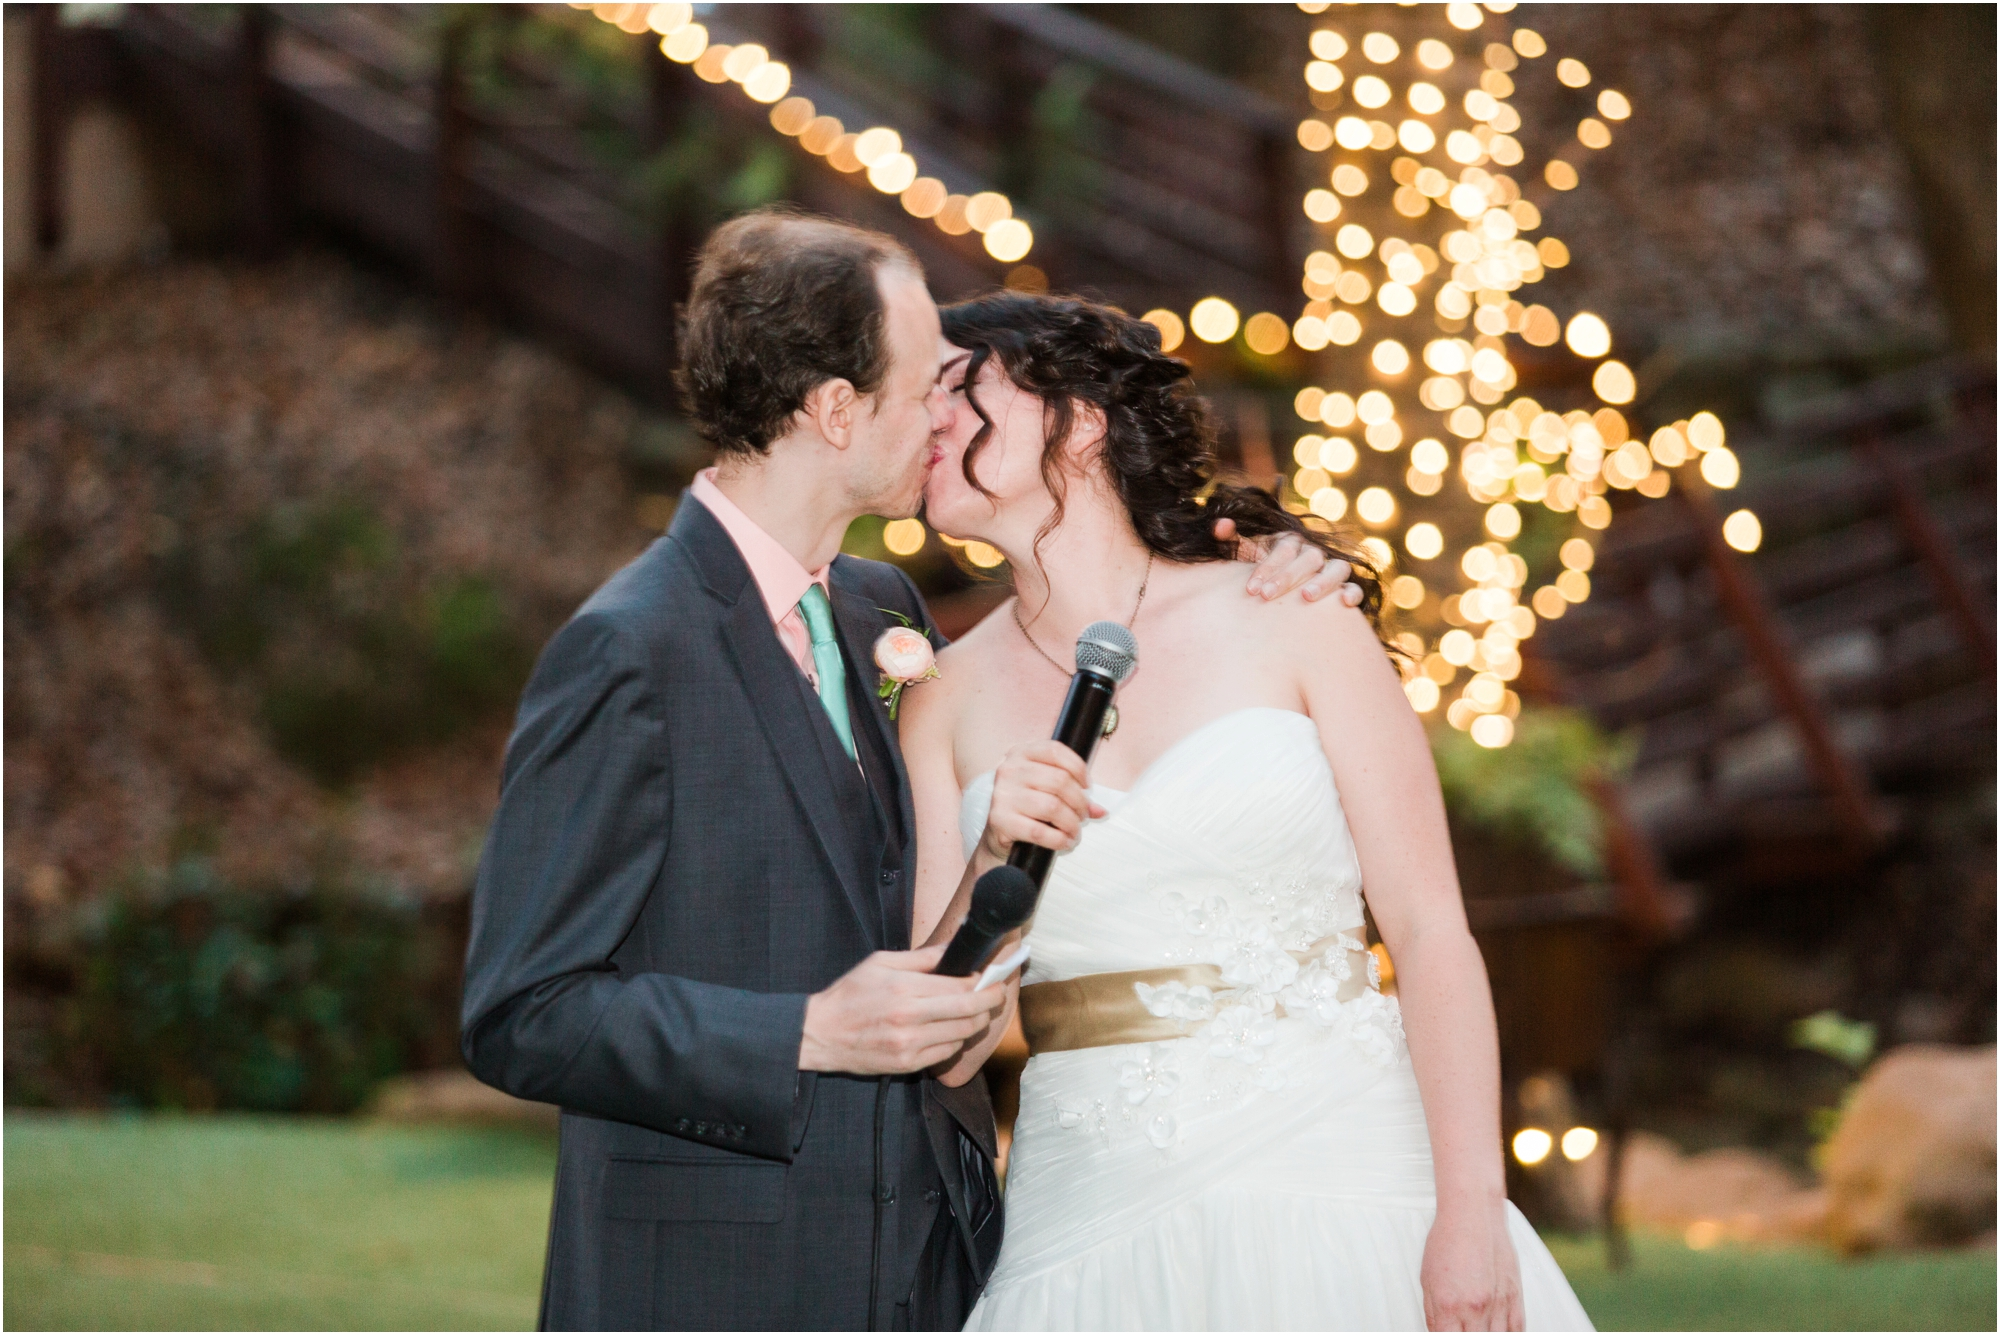 Saratoga Springs wedding pictures by Briana Calderon Photography_1898.jpg